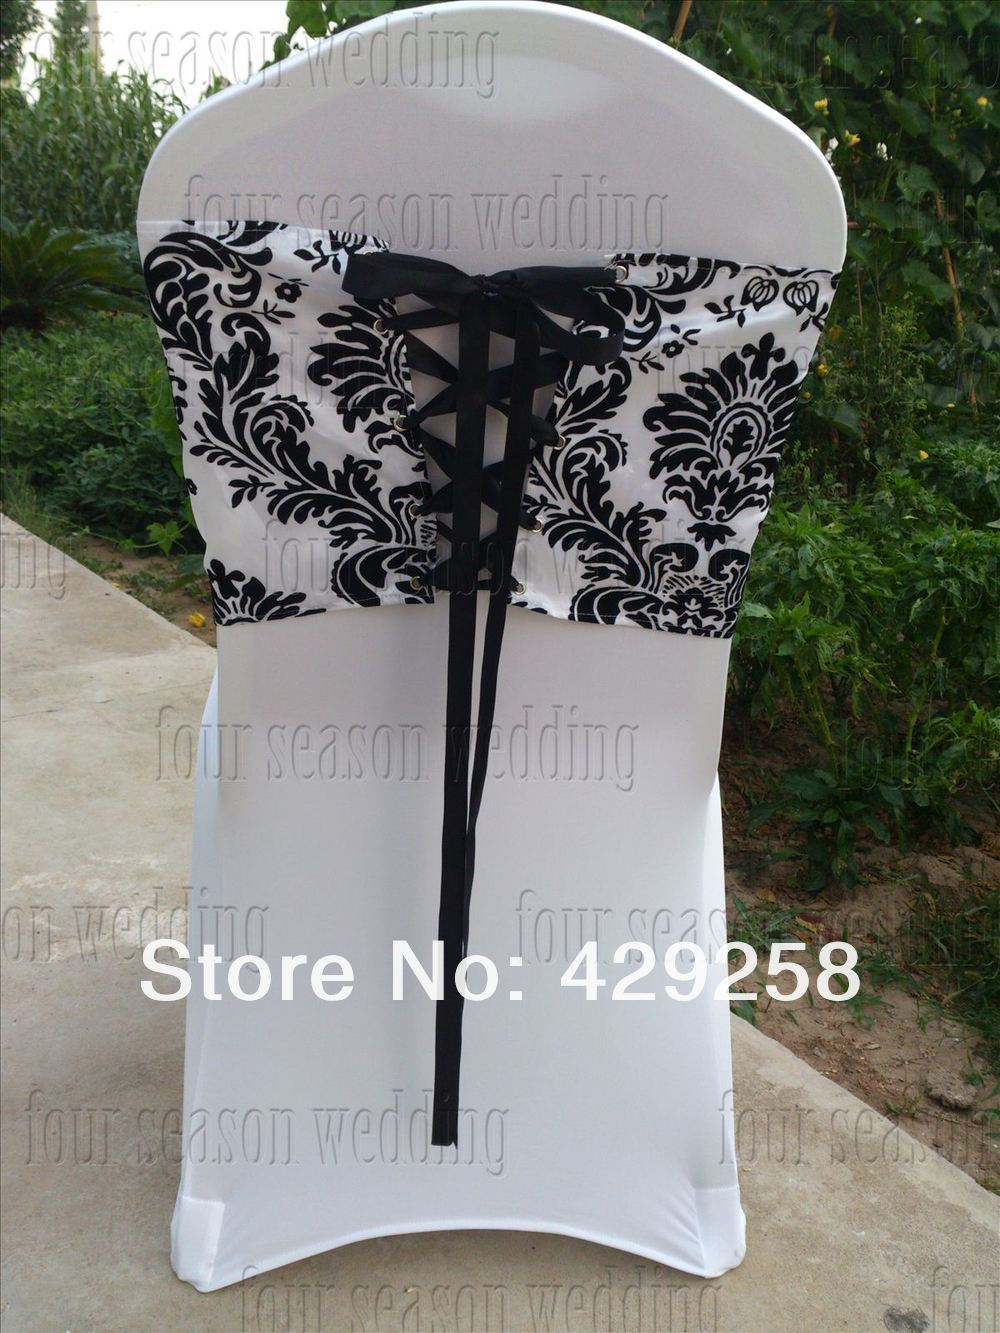 Chair Cover Elegance Lounge Towels Fitted Free Shipping 20pcs White And Black Flocking Taffeta Sash Also Call Damask Corset